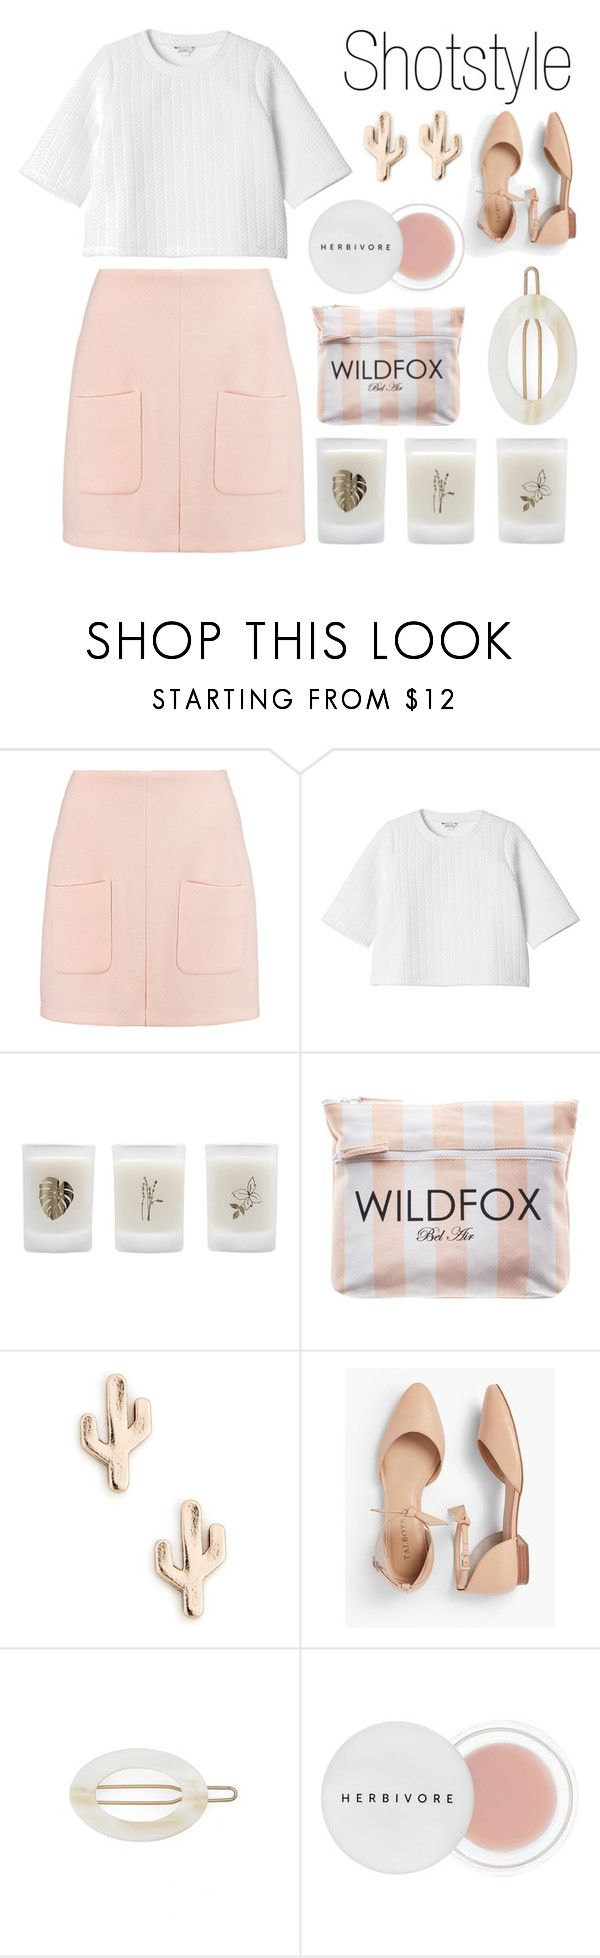 """""""Be pink!"""" by shotstyle ❤ liked on Polyvore featuring See by Chloé, Monki, Elizabeth Scarlett, Wildfox, Sole Society, Talbots, France Luxe and Herbivore"""